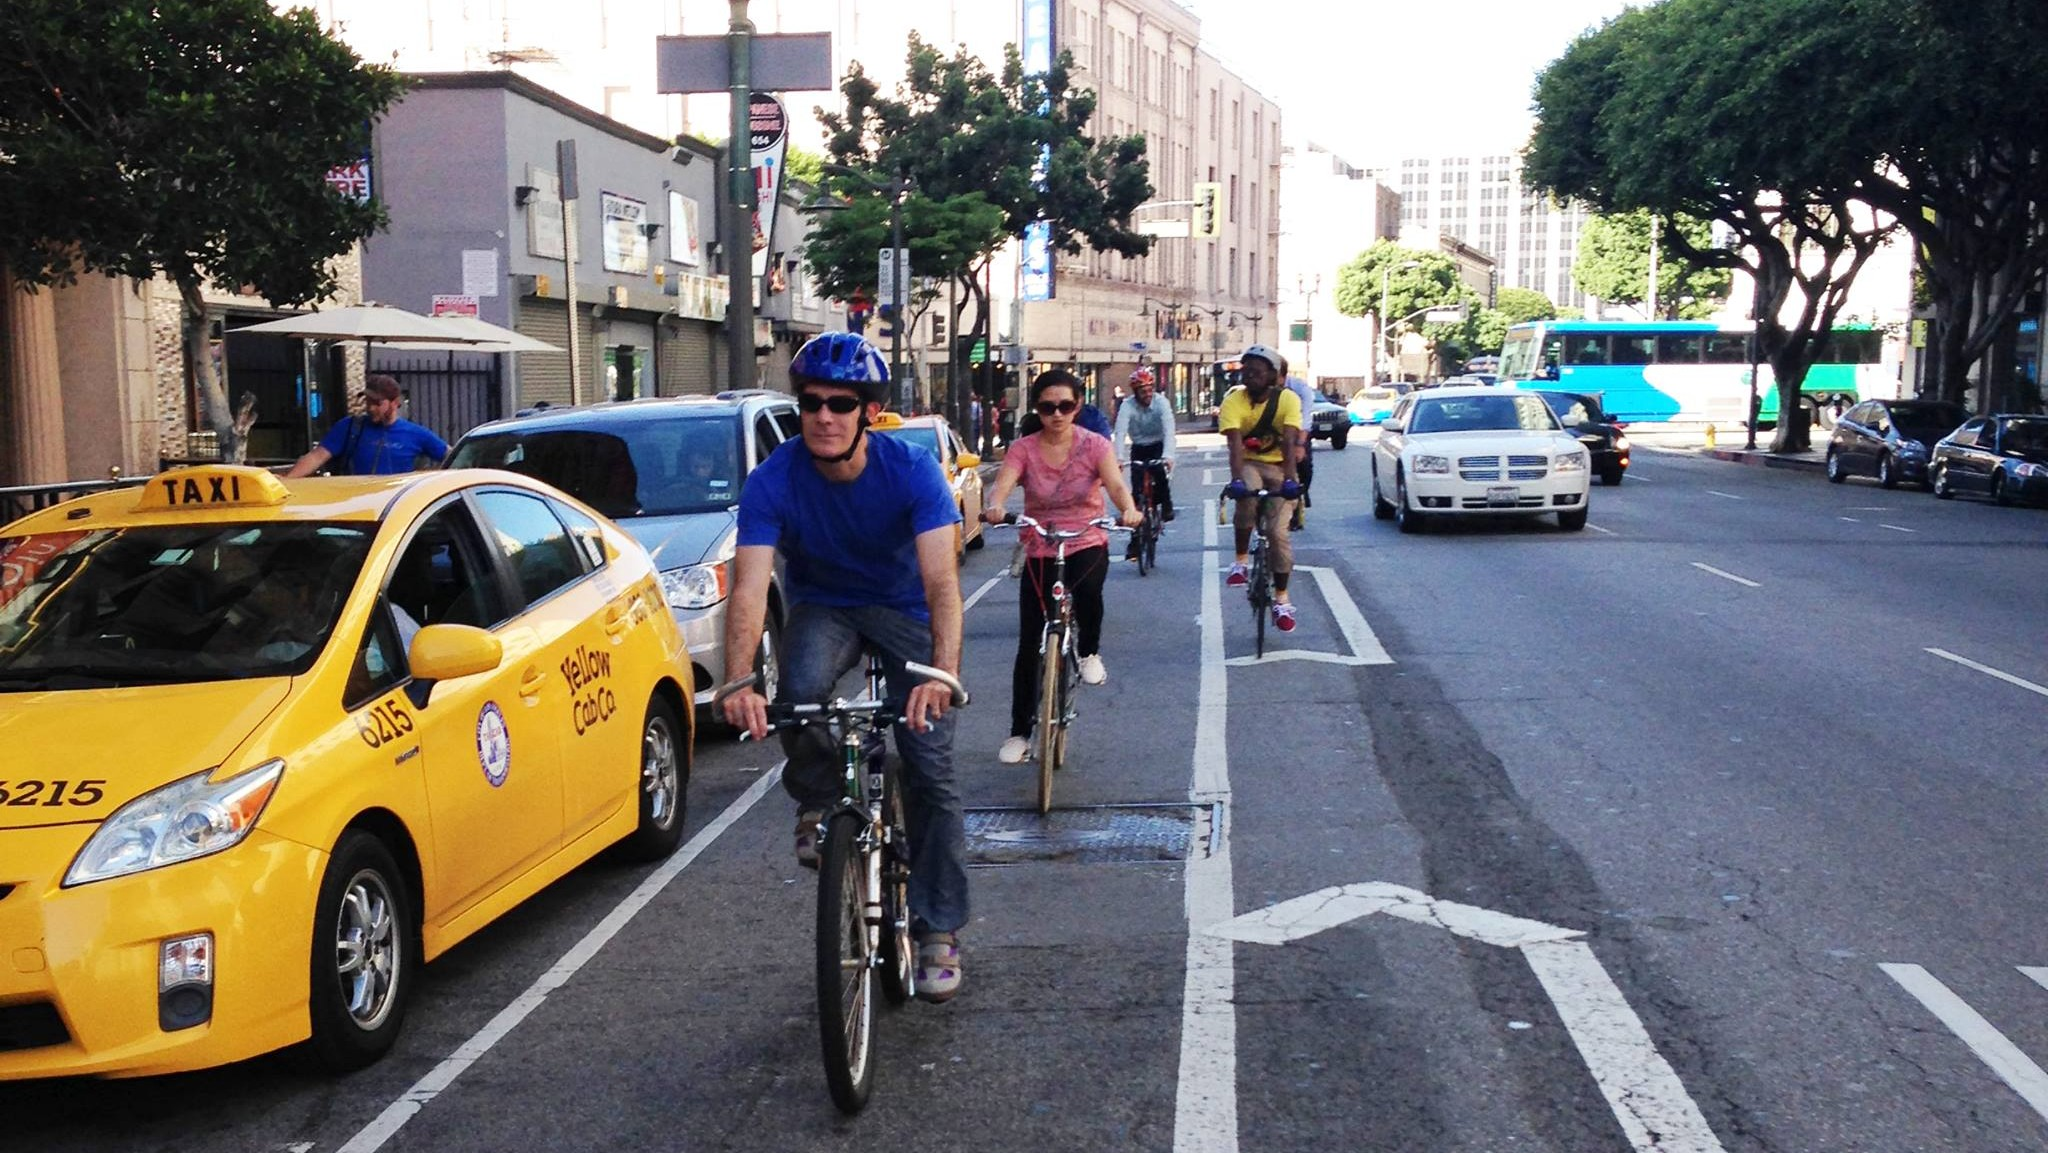 Los Angeles Mayor Eric Garcetti biked to work yesterday morning. Photo via Mayor Garcetti Facebook page